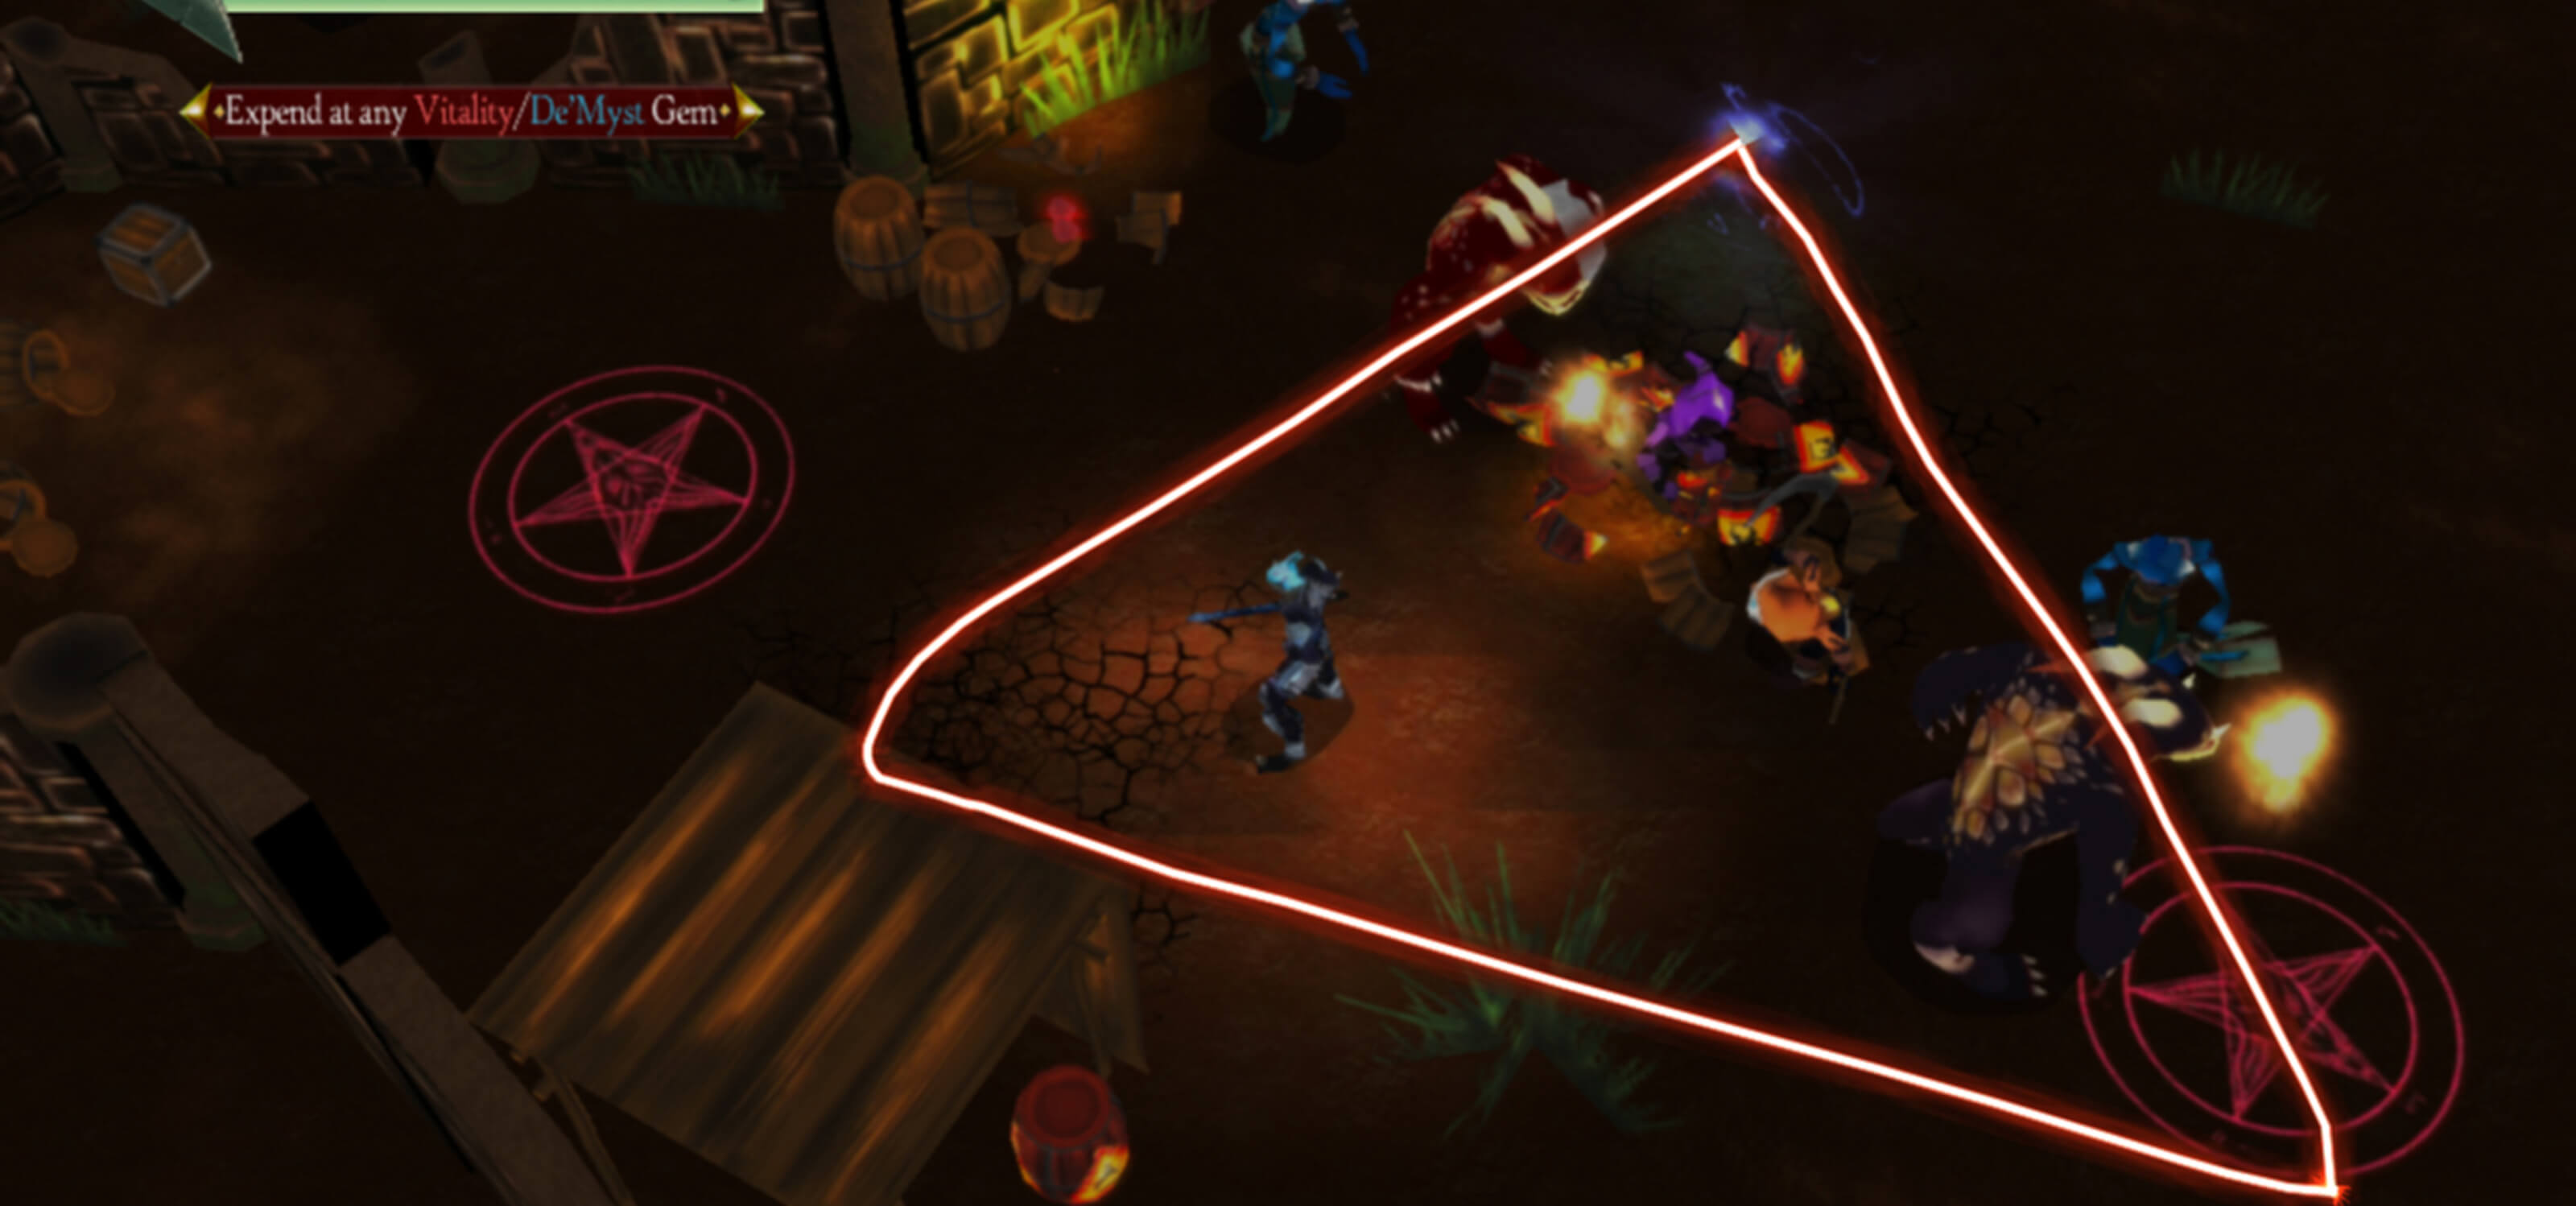 In a dark dungeon, a bright red triangle is drawn around enemies to cast a damaging spell